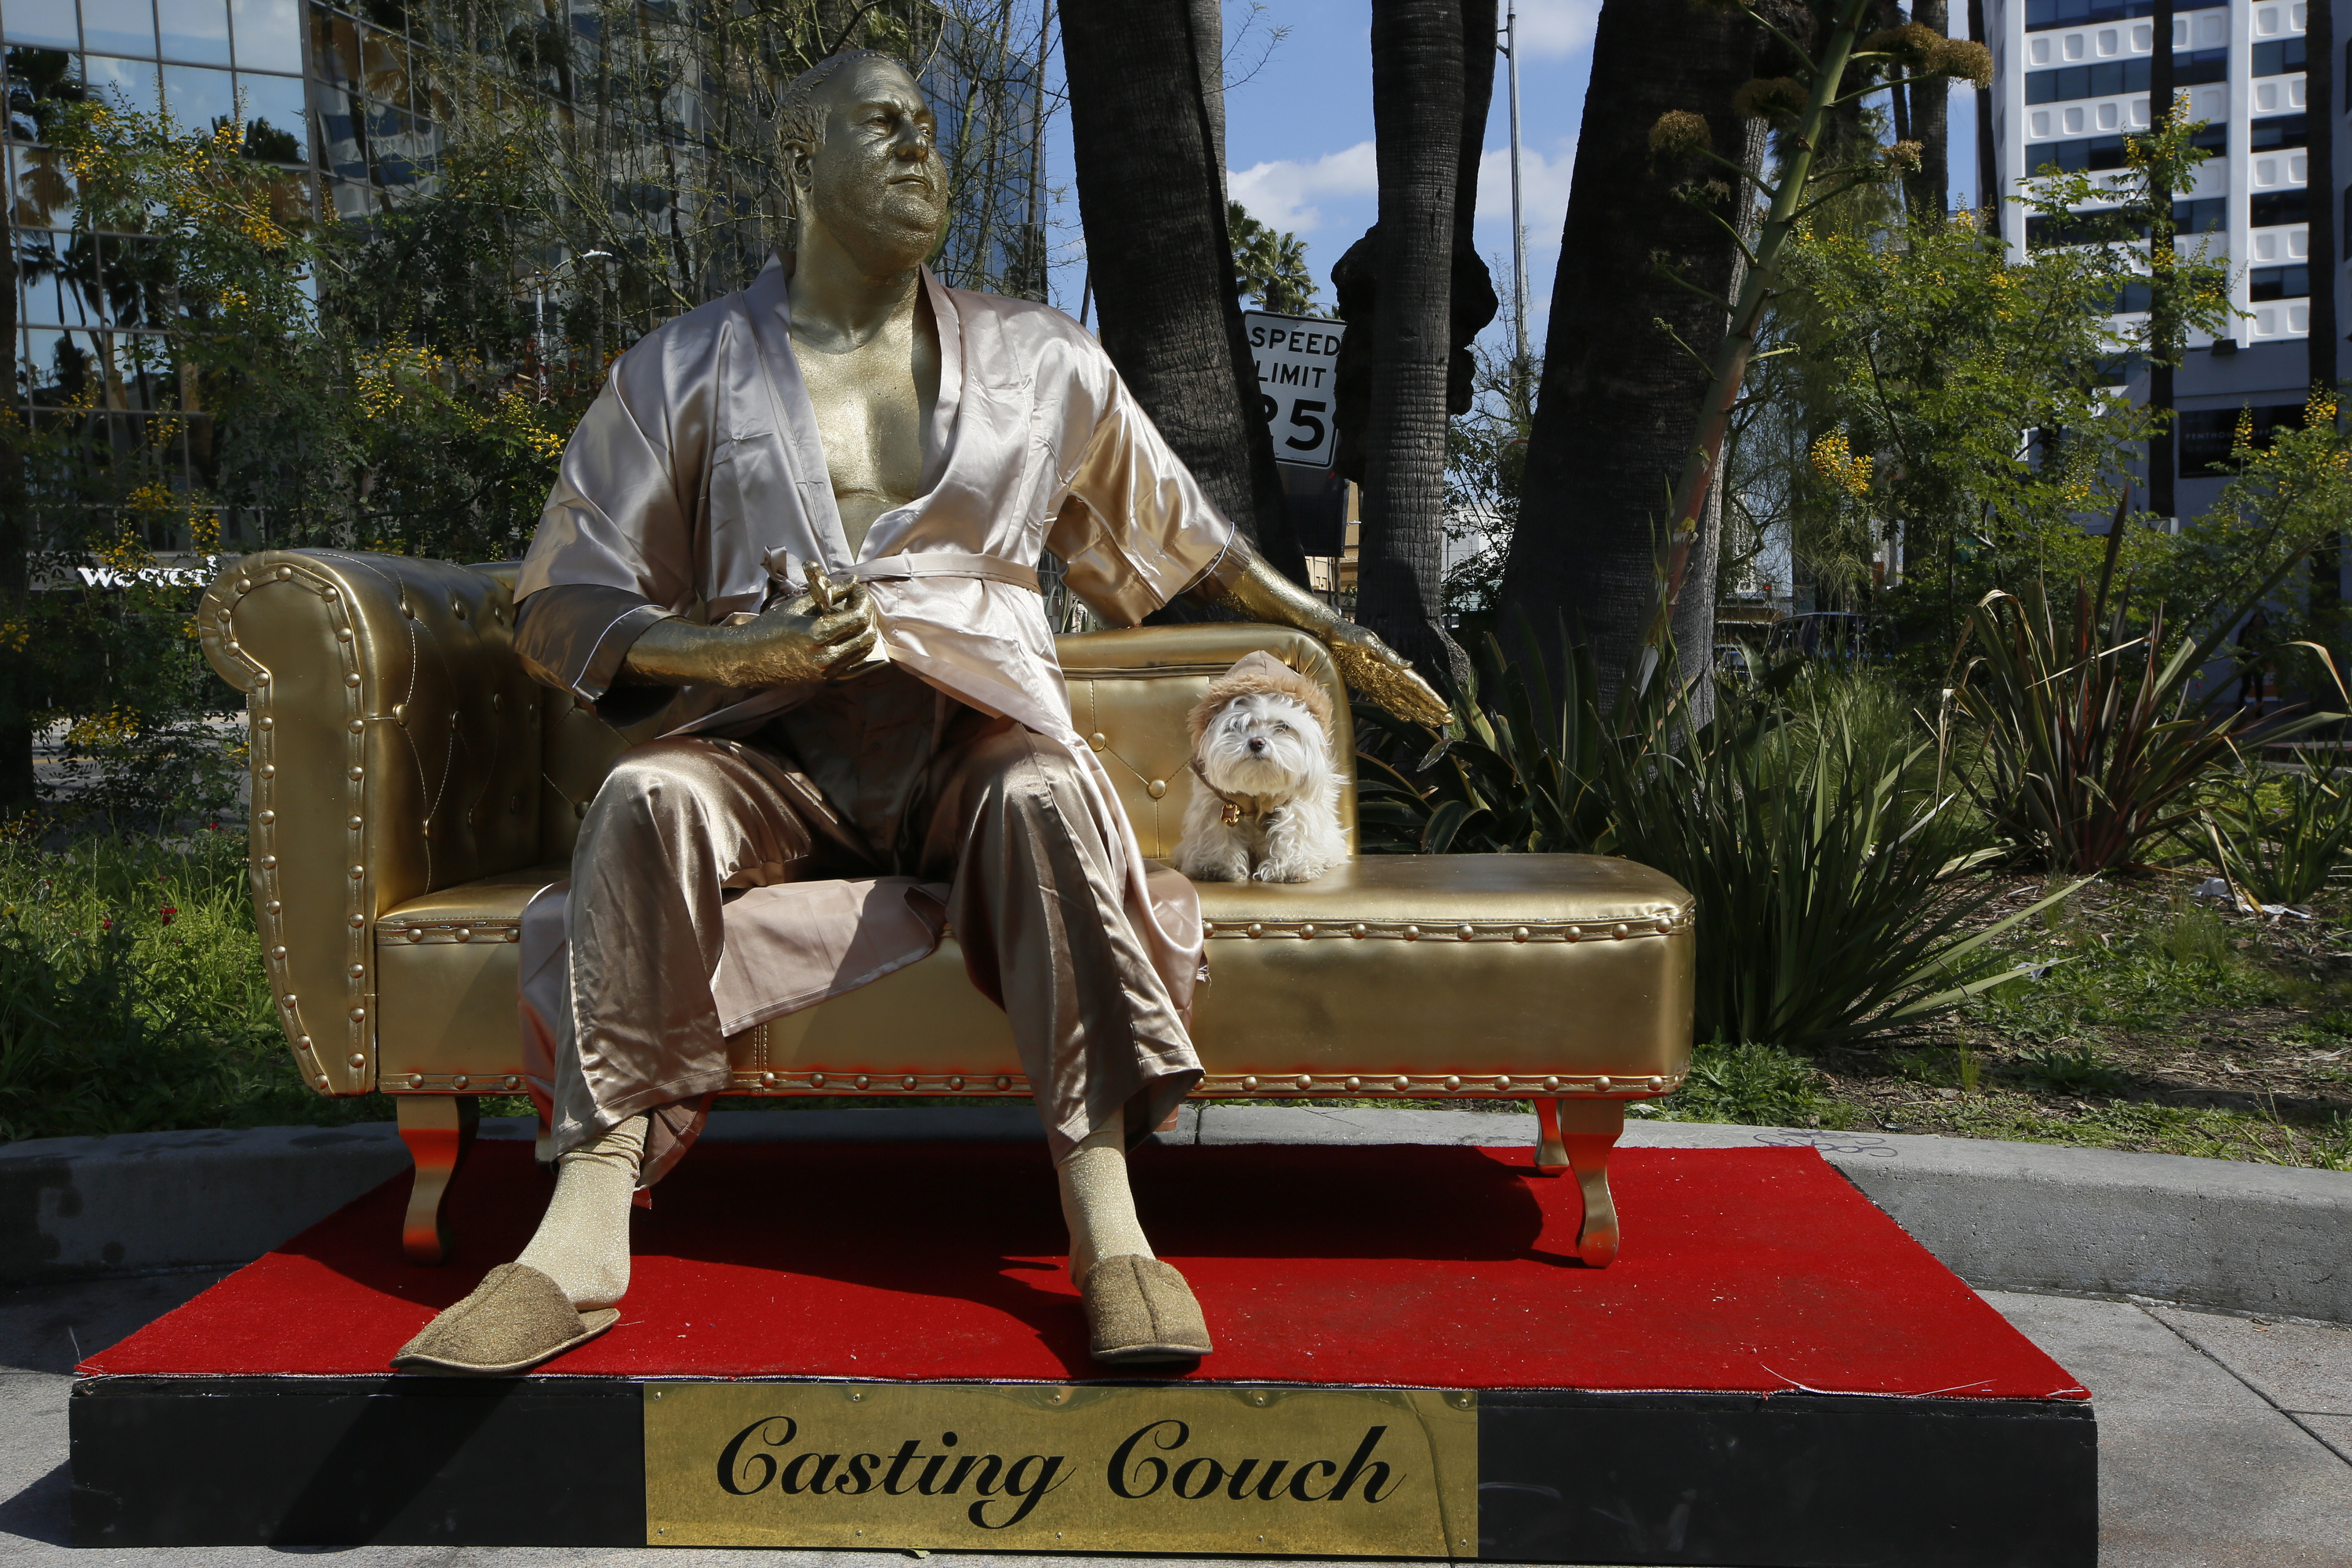 Sculpture Of Harvey Weinstein's 'Casting Couch' Unveiled In Hollywood